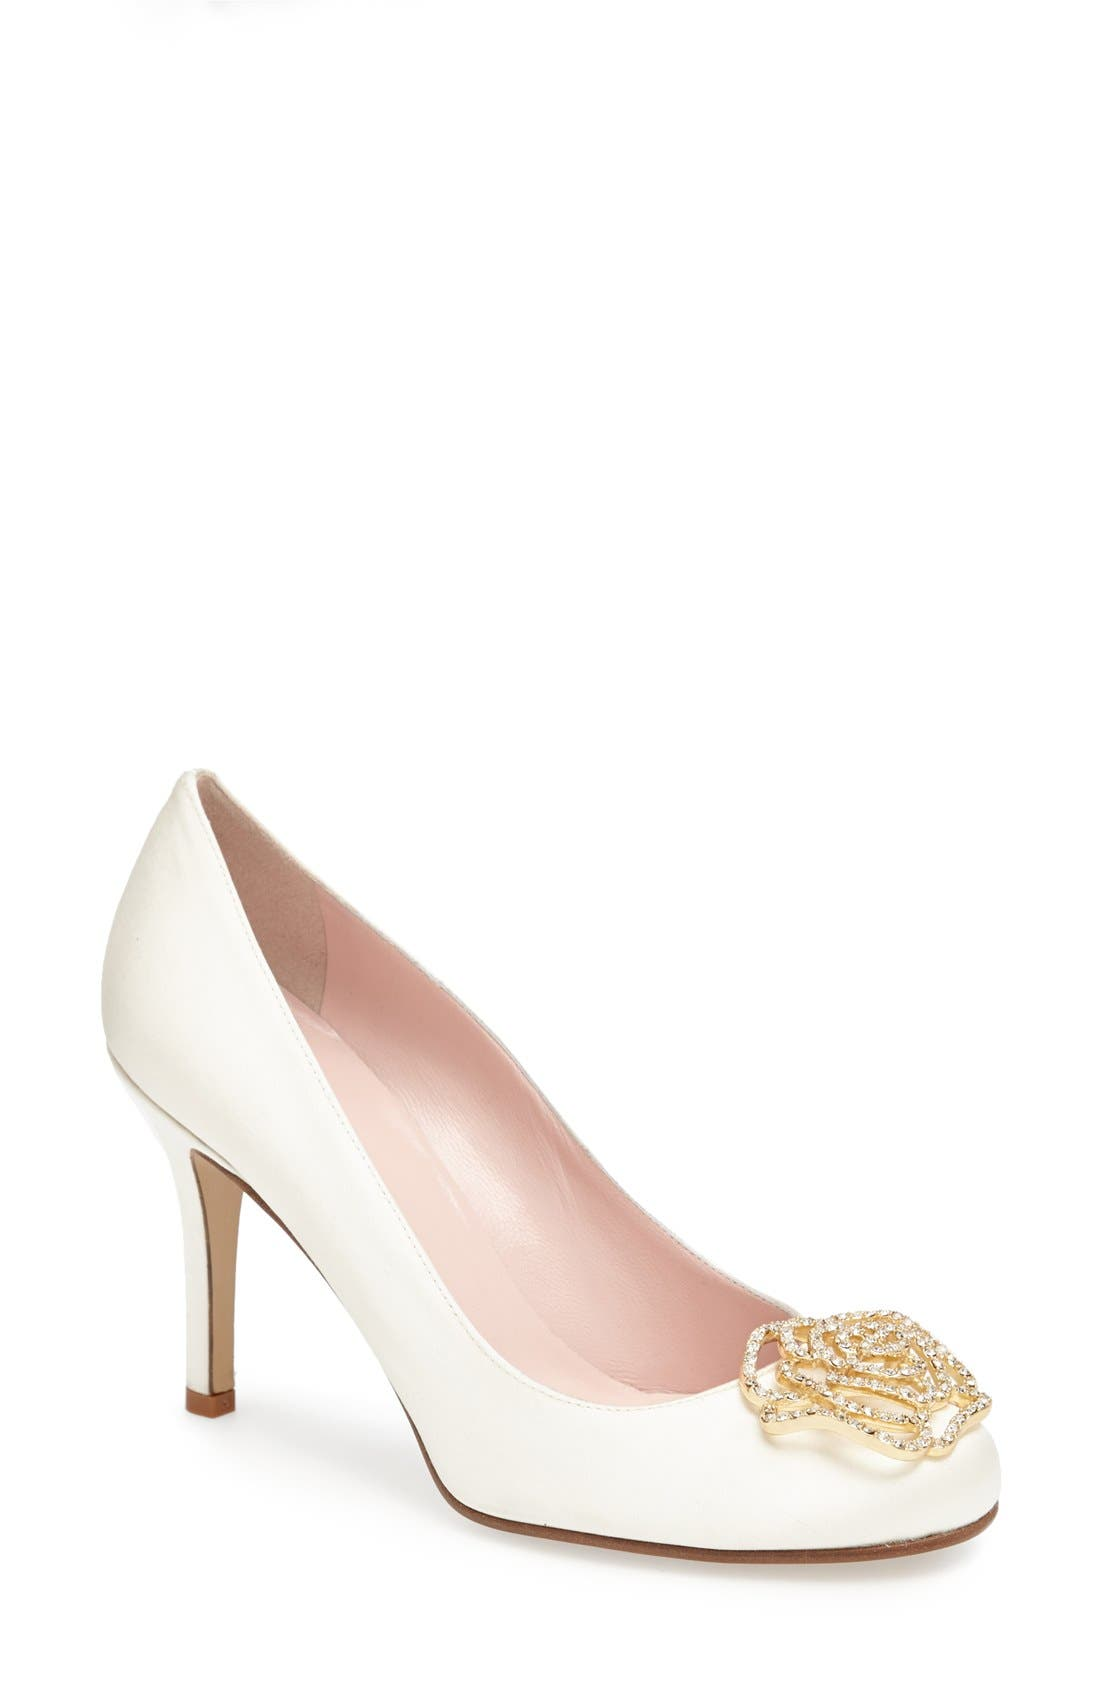 Main Image - kate spade new york 'kari' pump (Women)